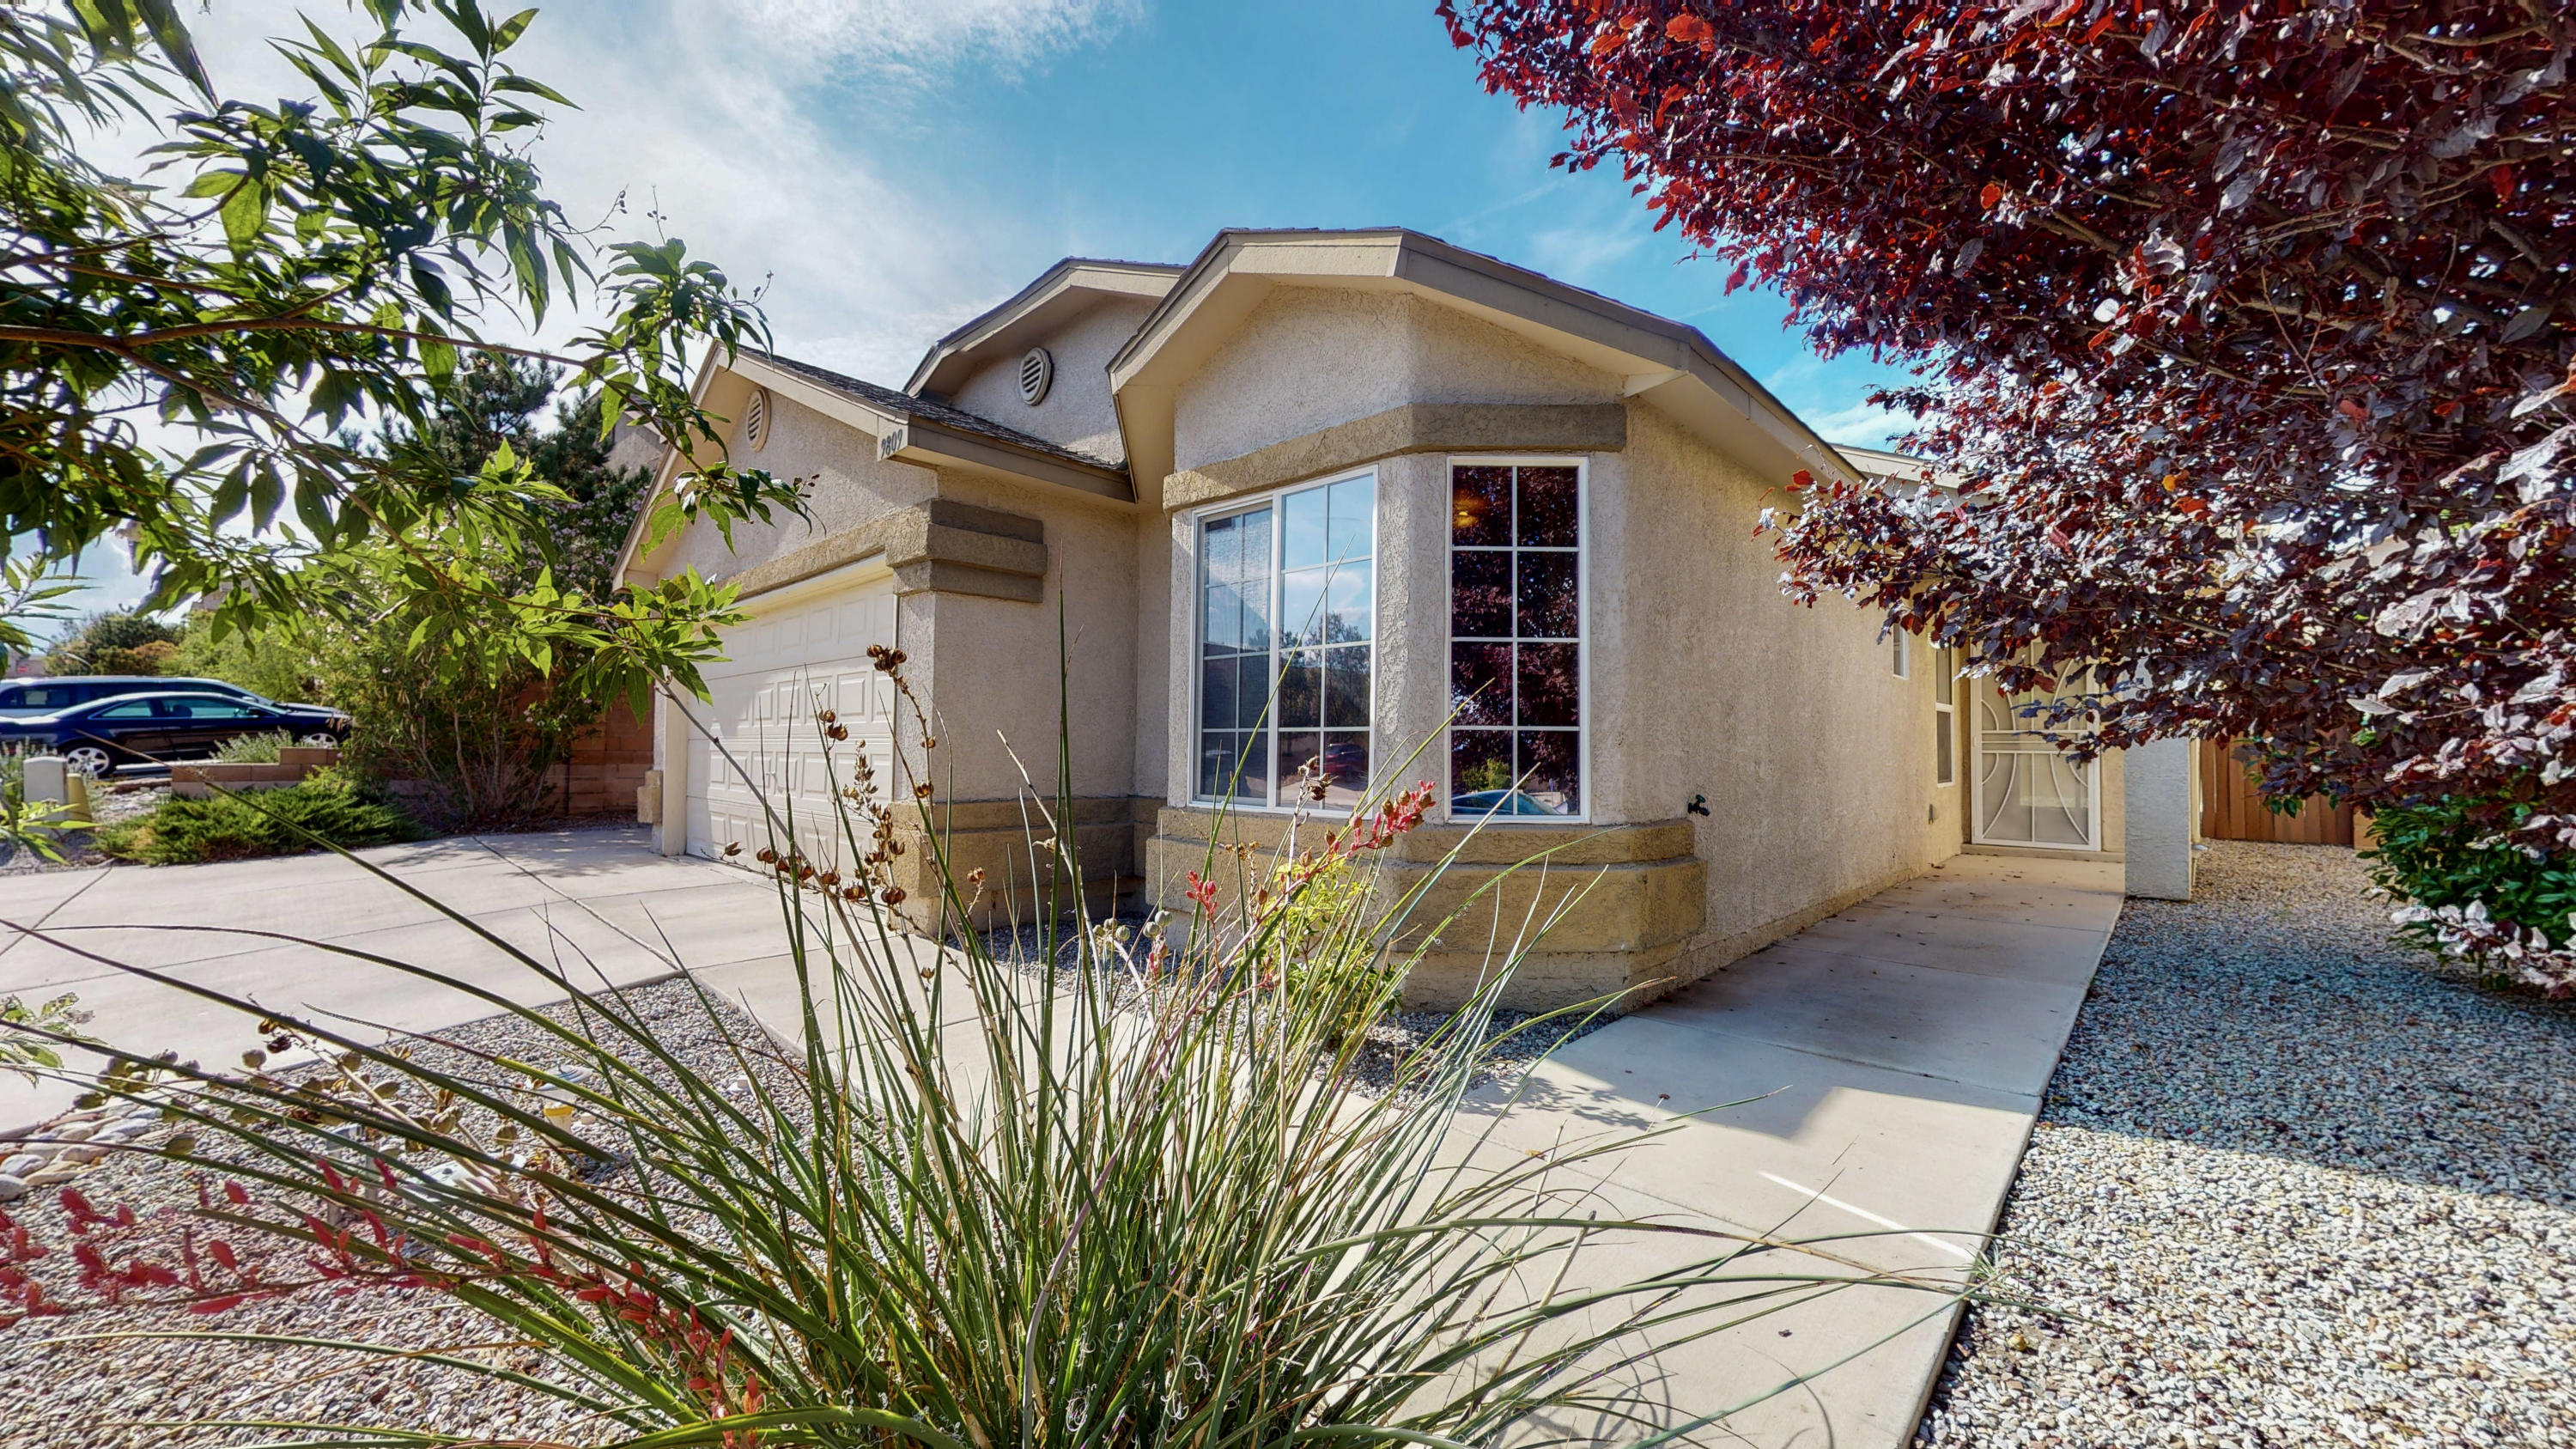 Beautiful Move-In-Ready Home in the Gated Community of Sun Gate Estates in the Southwest Heights with 3 (possible 4) bedrooms and 2 full bathrooms as well as an oversized 3-car garage. This very well-maintained home features an open floor plan, a bright open kitchen with an island, huge pantry, and a window seat in the breakfast nook. You will be welcomed by Cathedral ceilings, gas fireplace, inviting paint throughout, a large master suite with walk-in closet and separate tub and shower, refrigerated air, and an oversized back and side yard with gated access and southwest natural landscaping and a raised block wall for privacy. Don't miss out on this great opportunity.